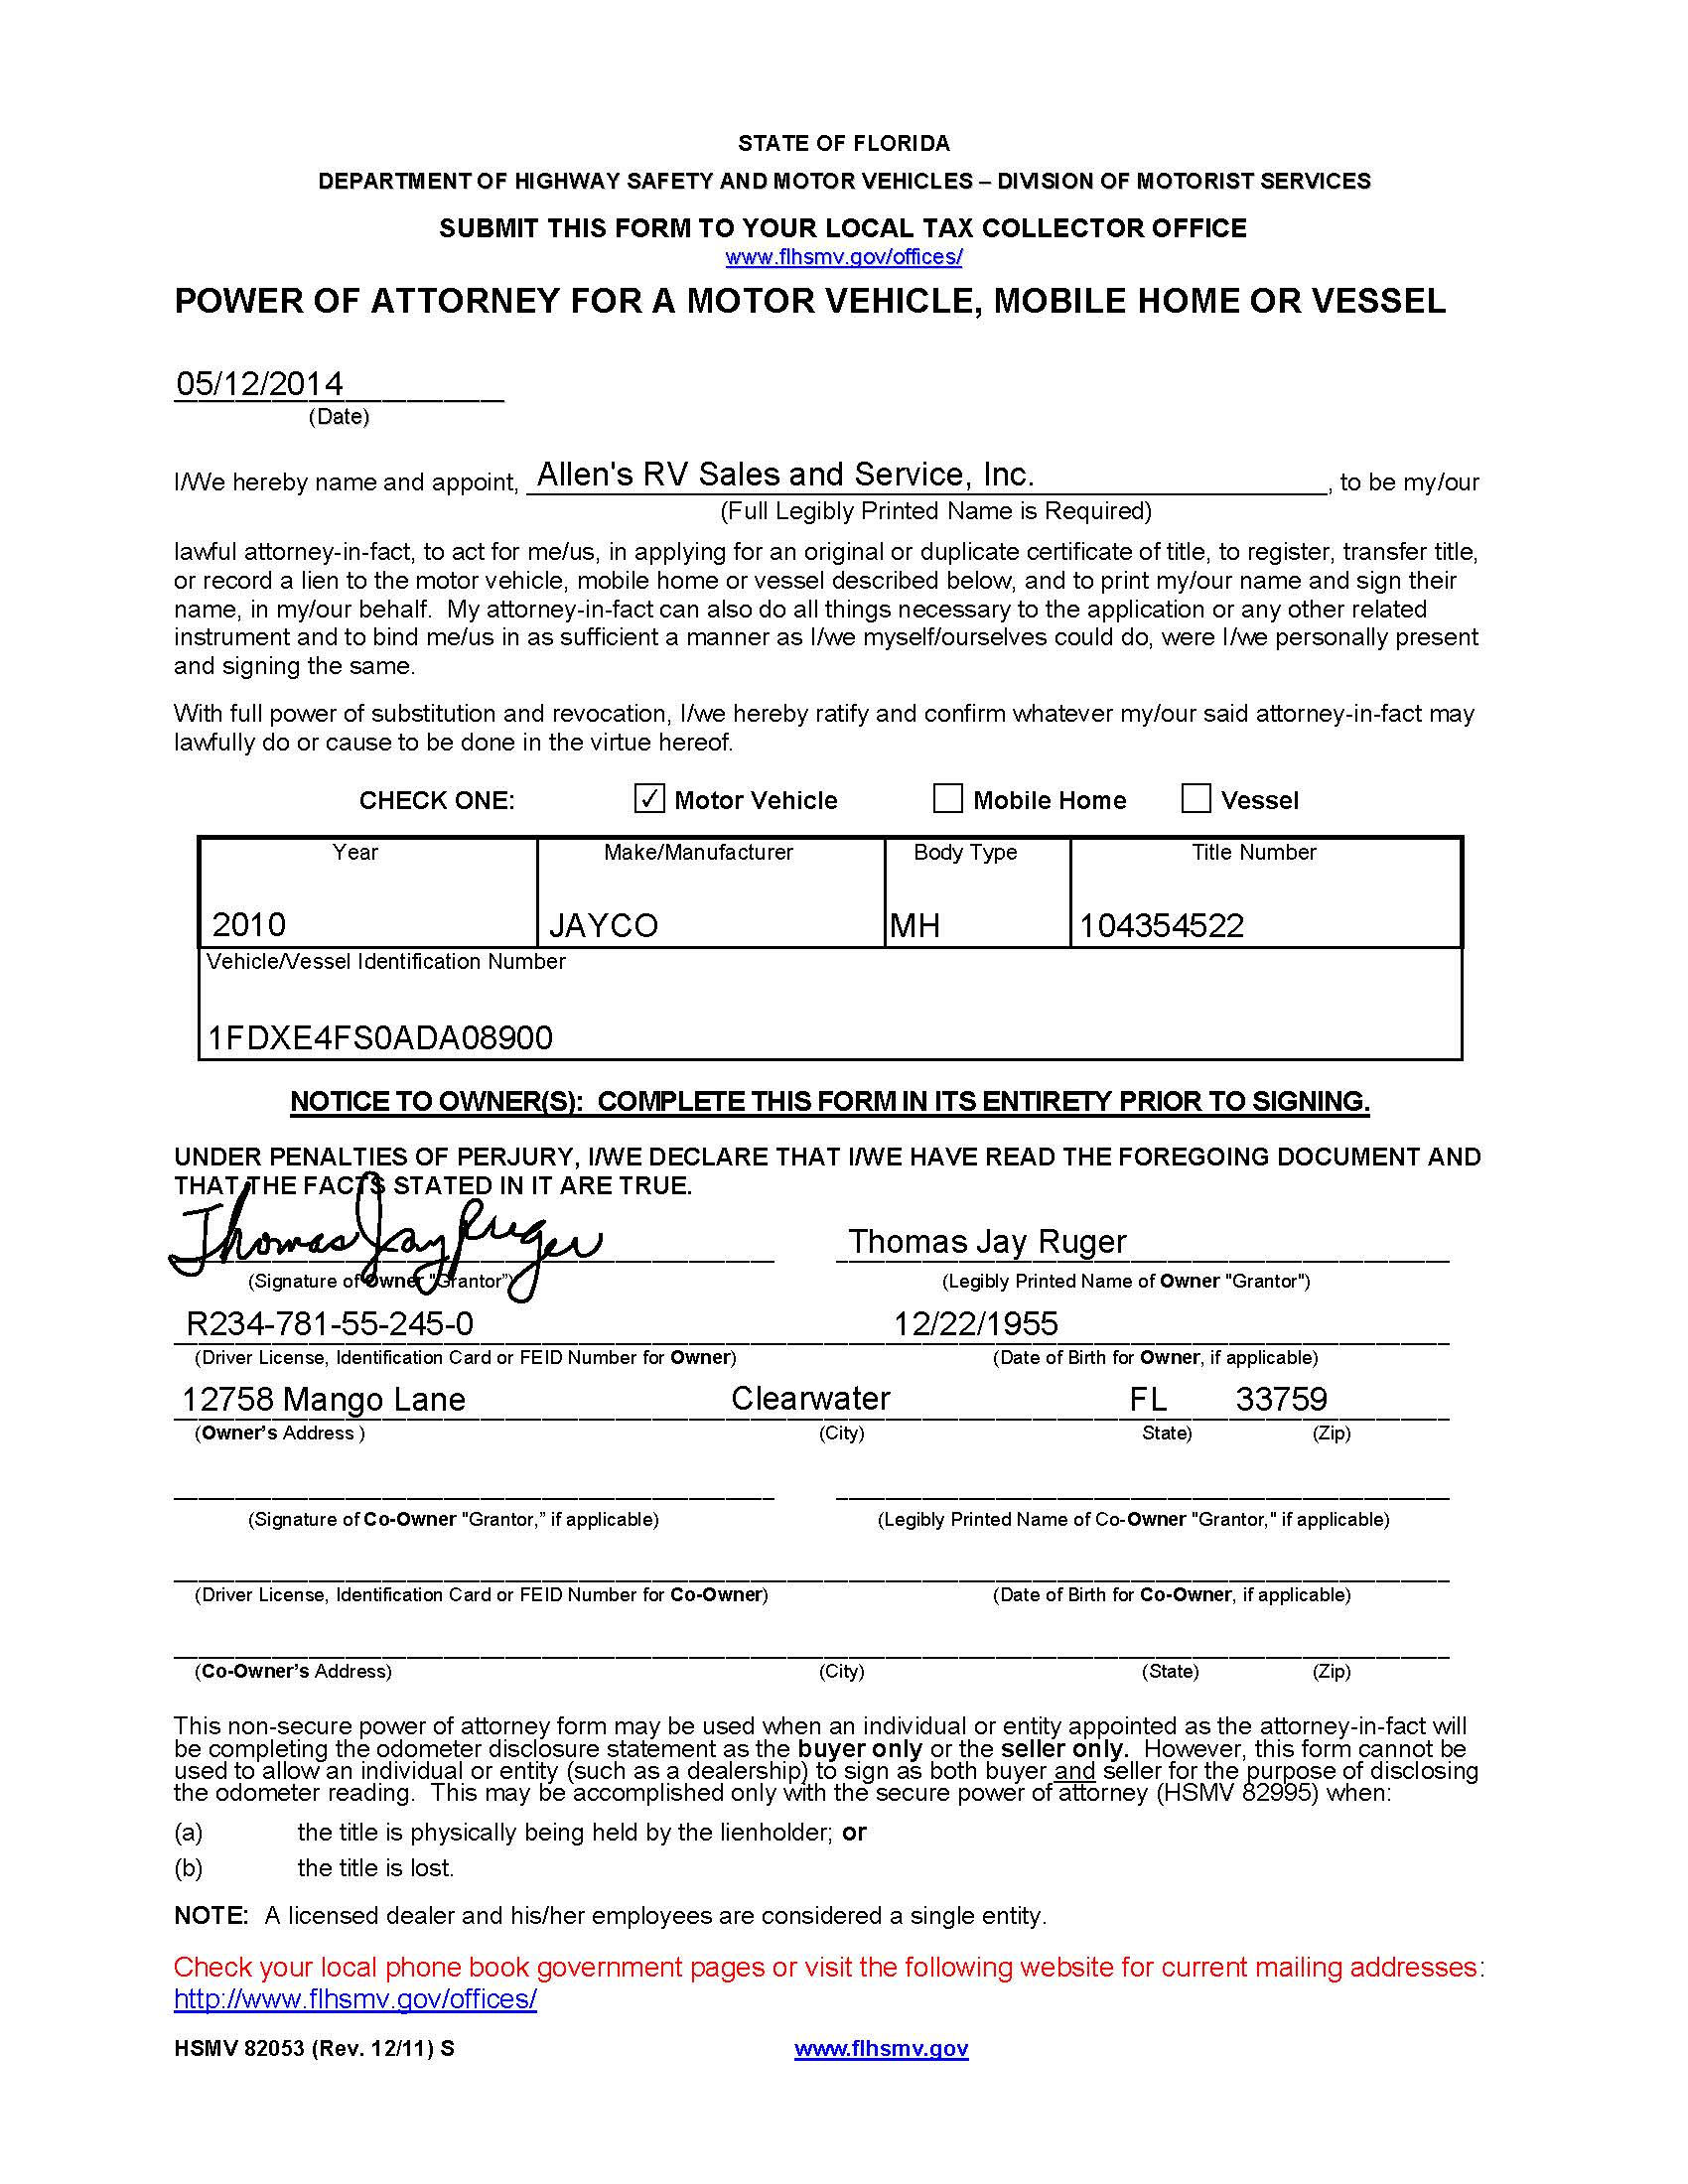 Powers of attorney which ones to use and how florida rv trade 82053 completed for dealer rv sample click image to enlarge falaconquin